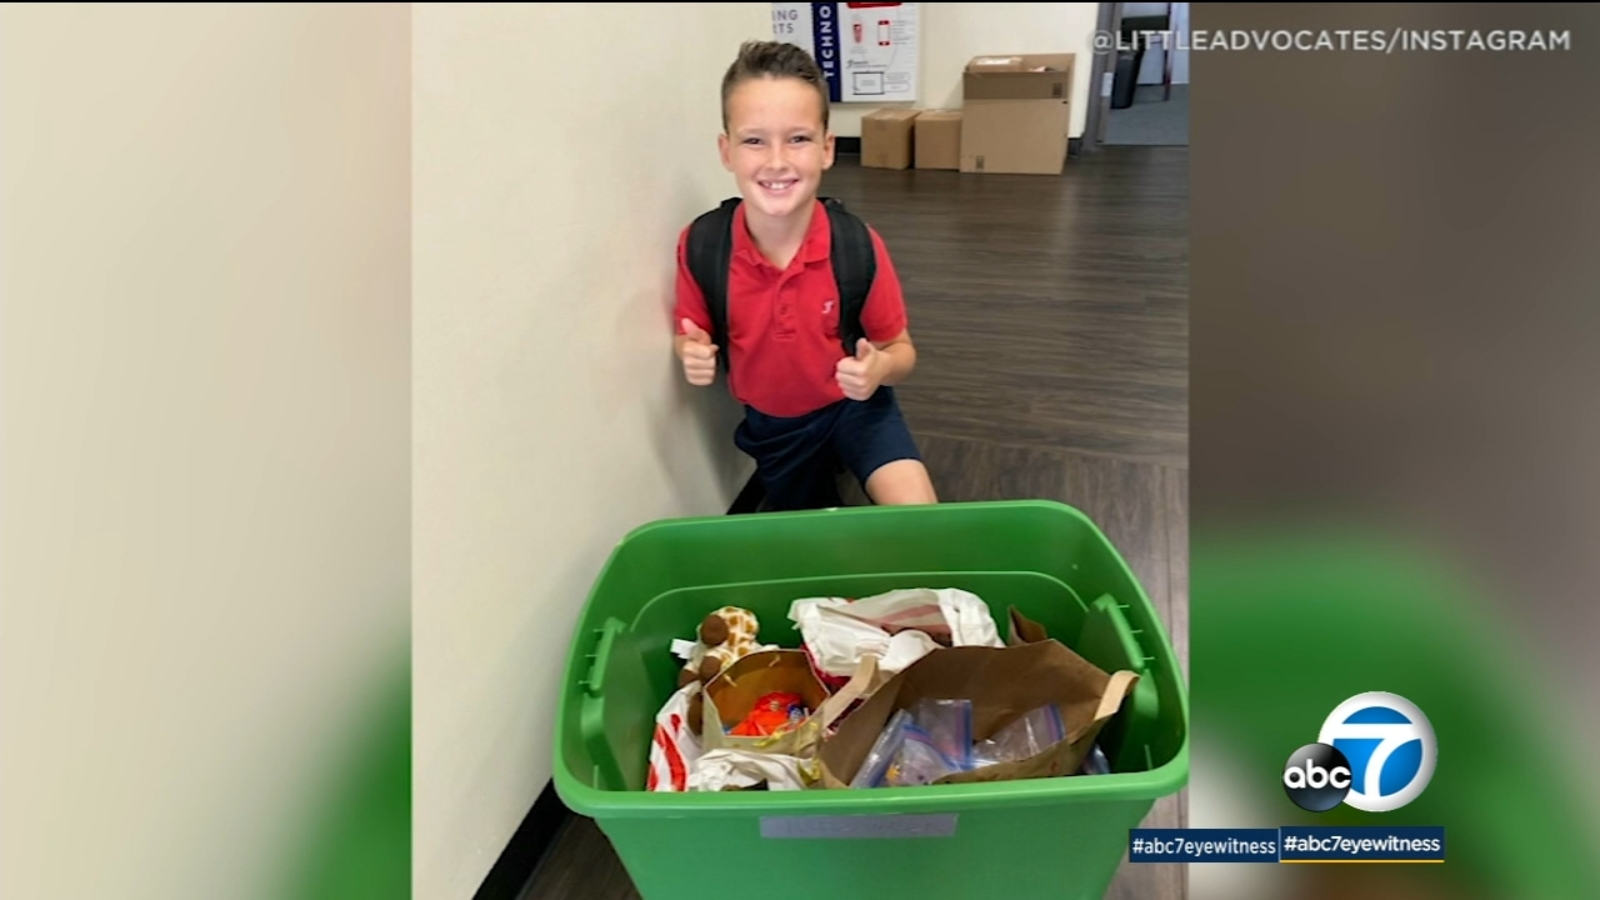 Anaheim 10-Year-Old Starts 'Little Advocates' Foundation to Help Those in Need